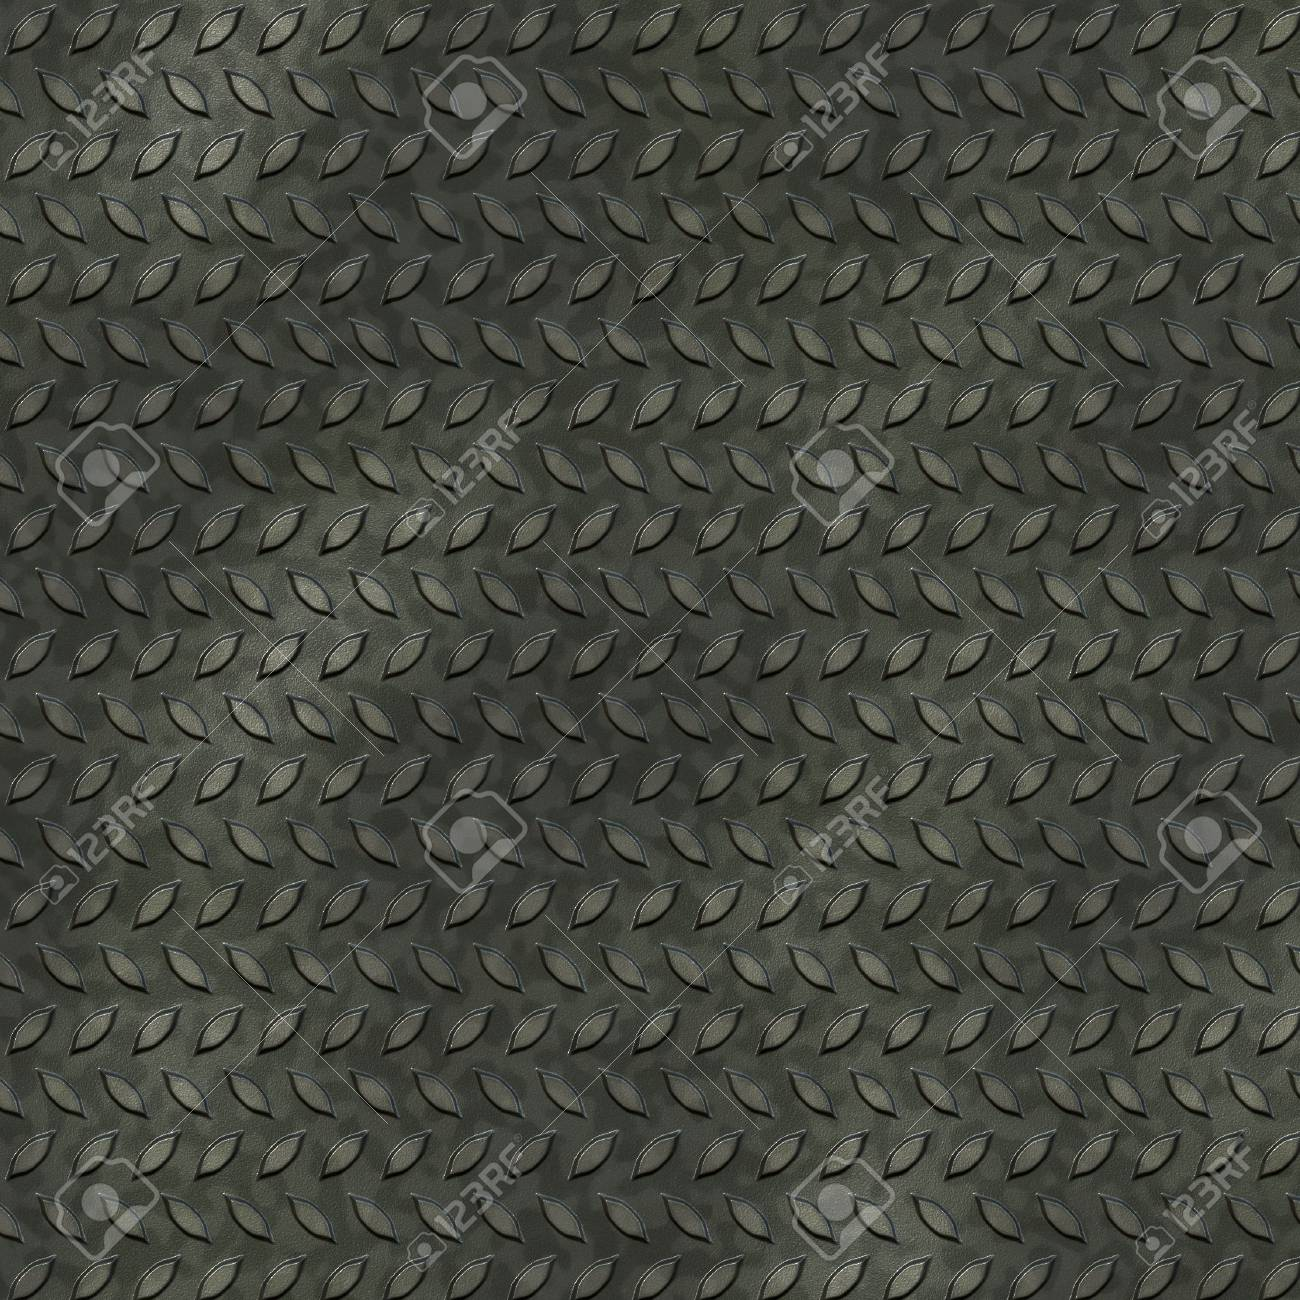 Dirty metal surface Stock Photo - 6173007